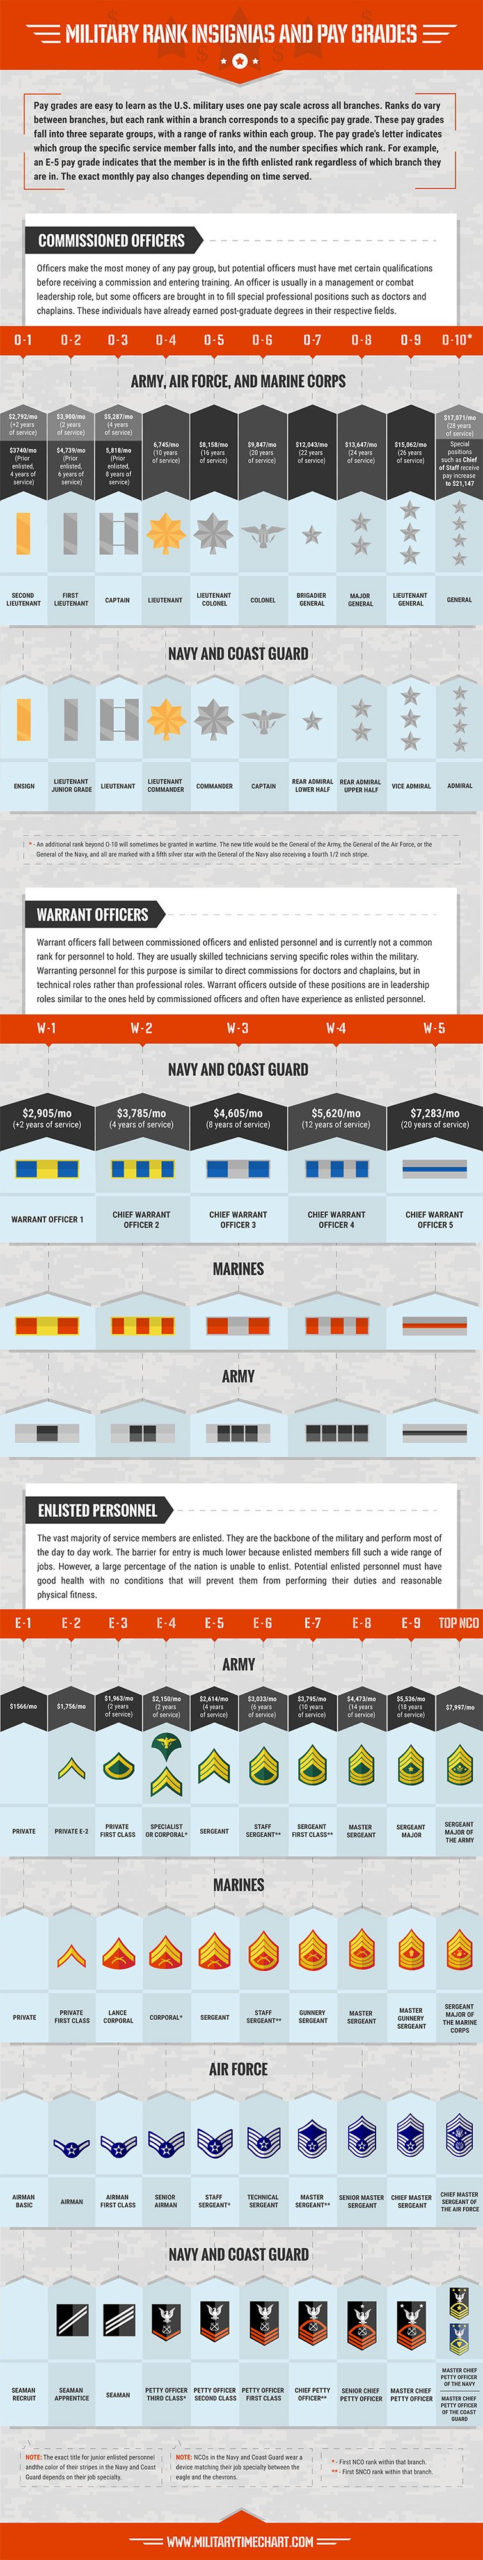 Military Pay Chart And Rank Insignia (Pay Scales) - Military